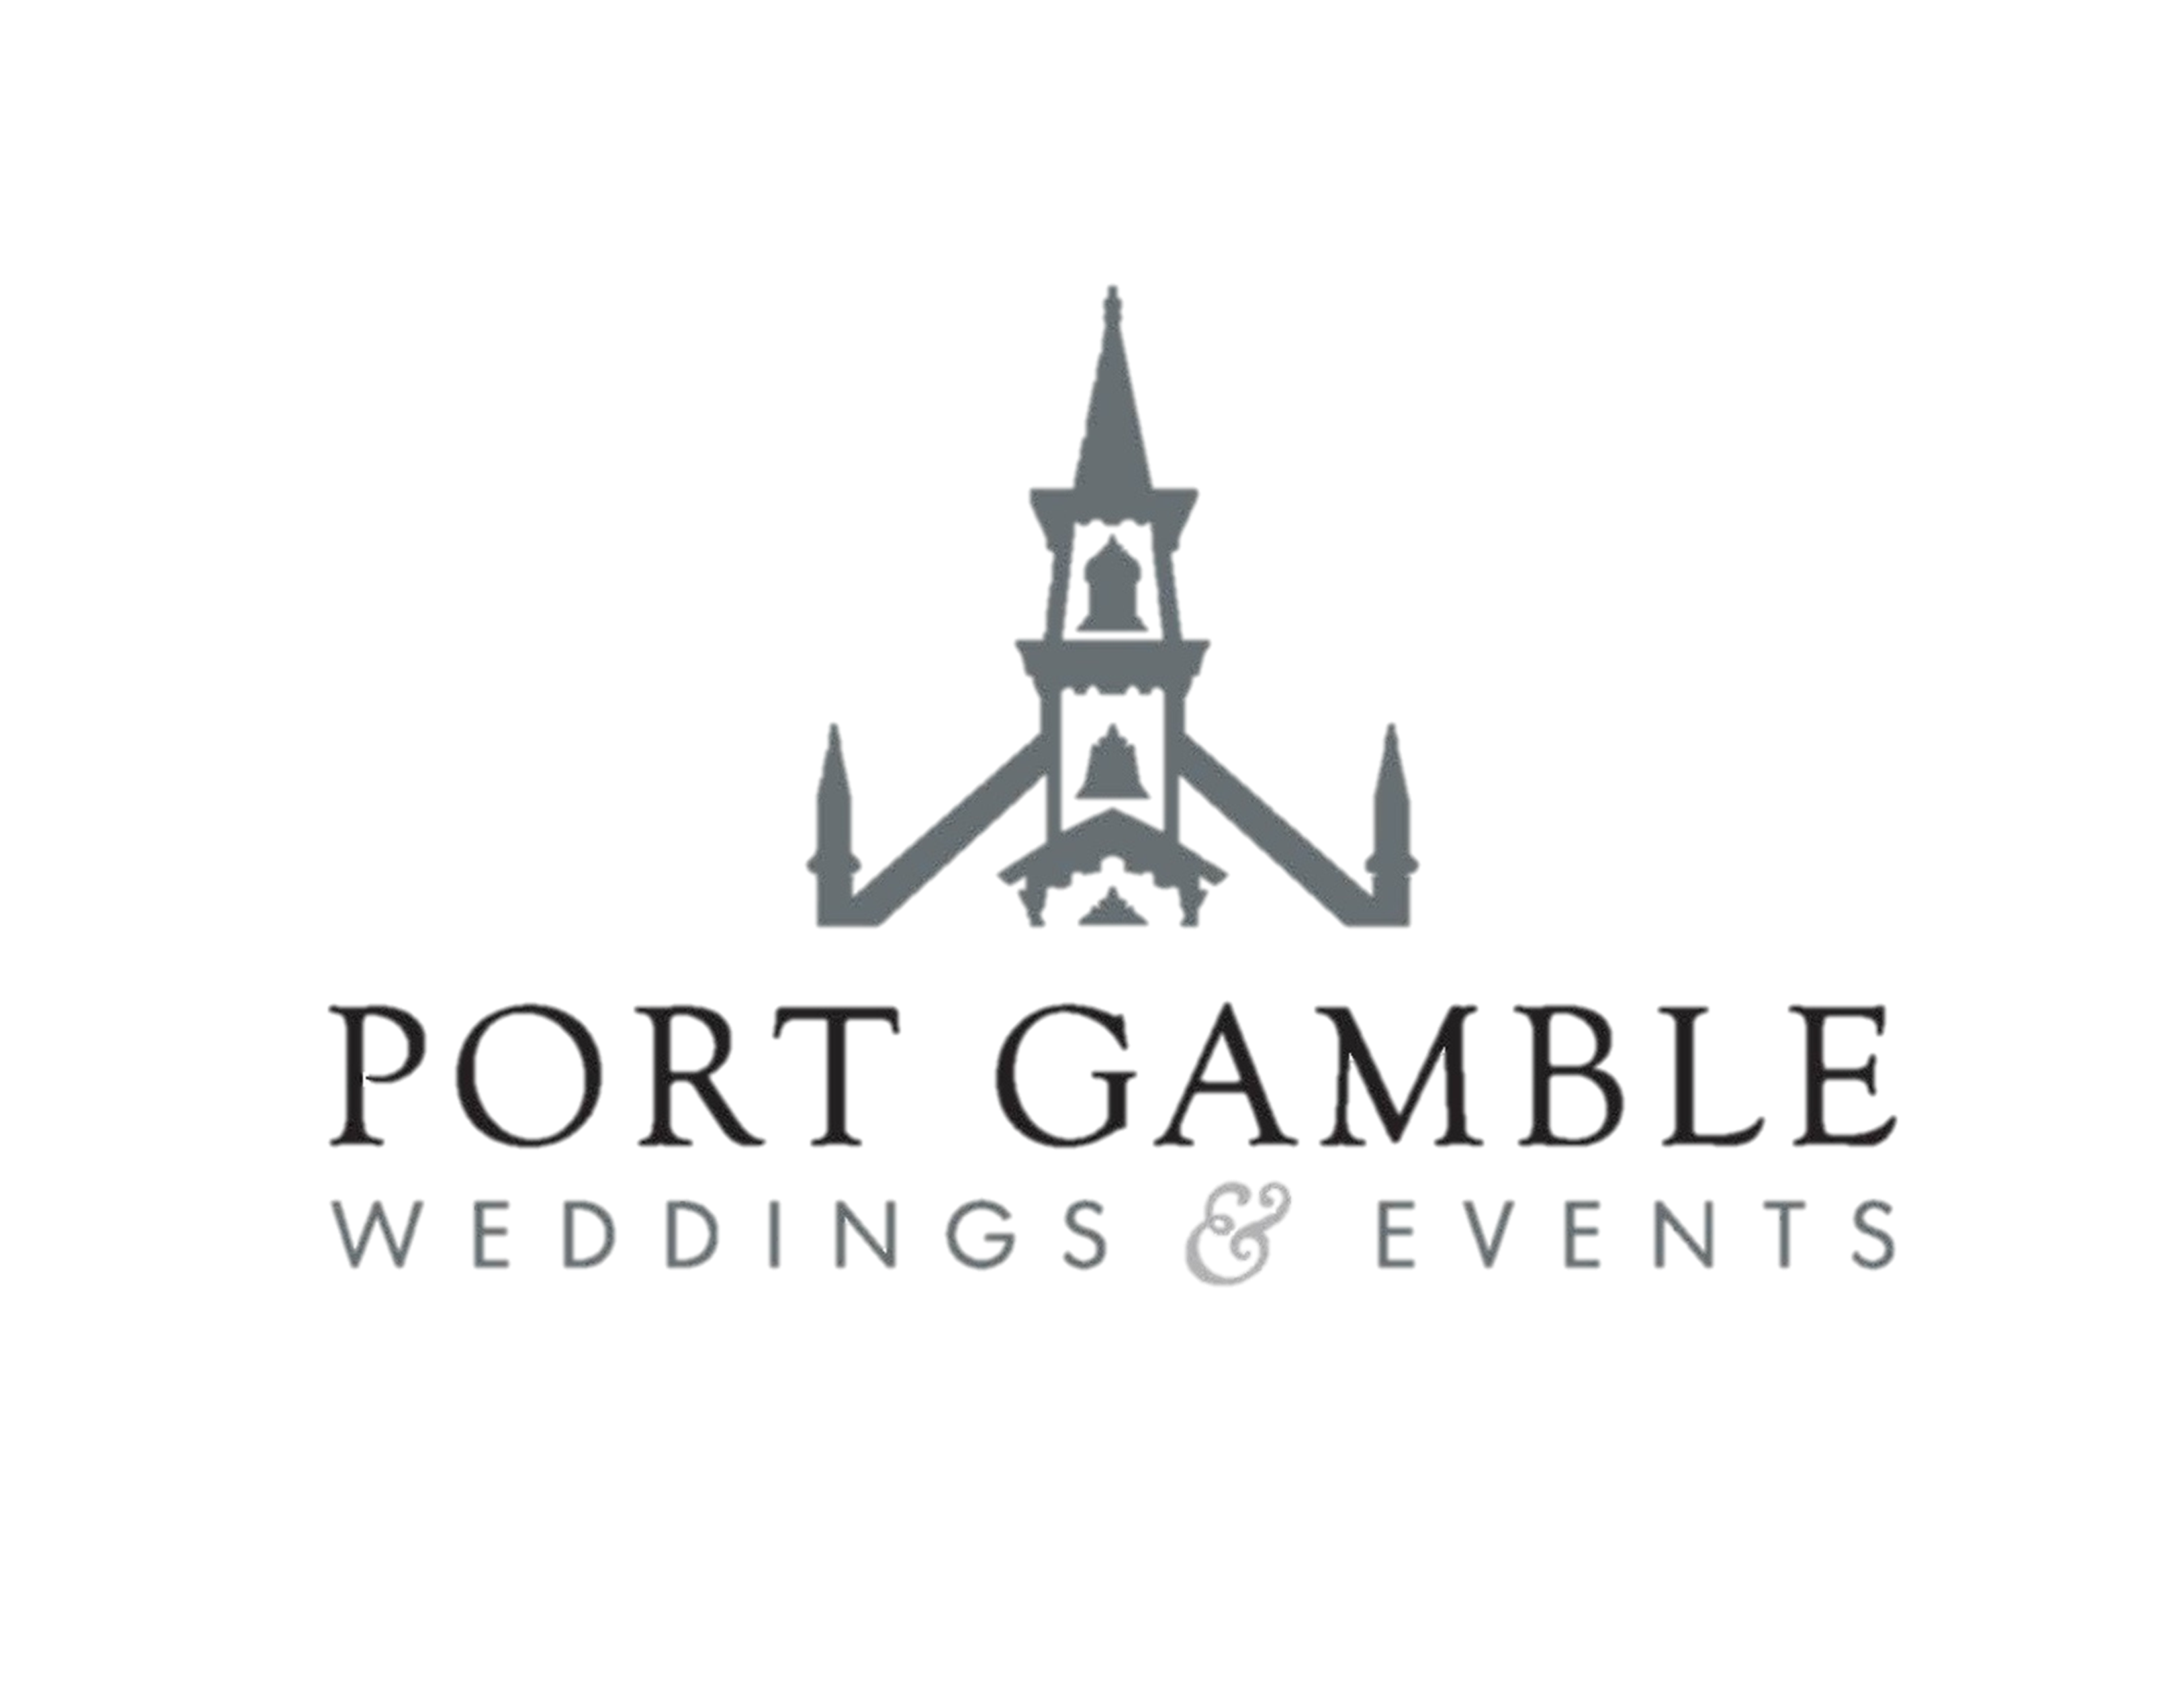 Port Gamble Weddings & Events Logo